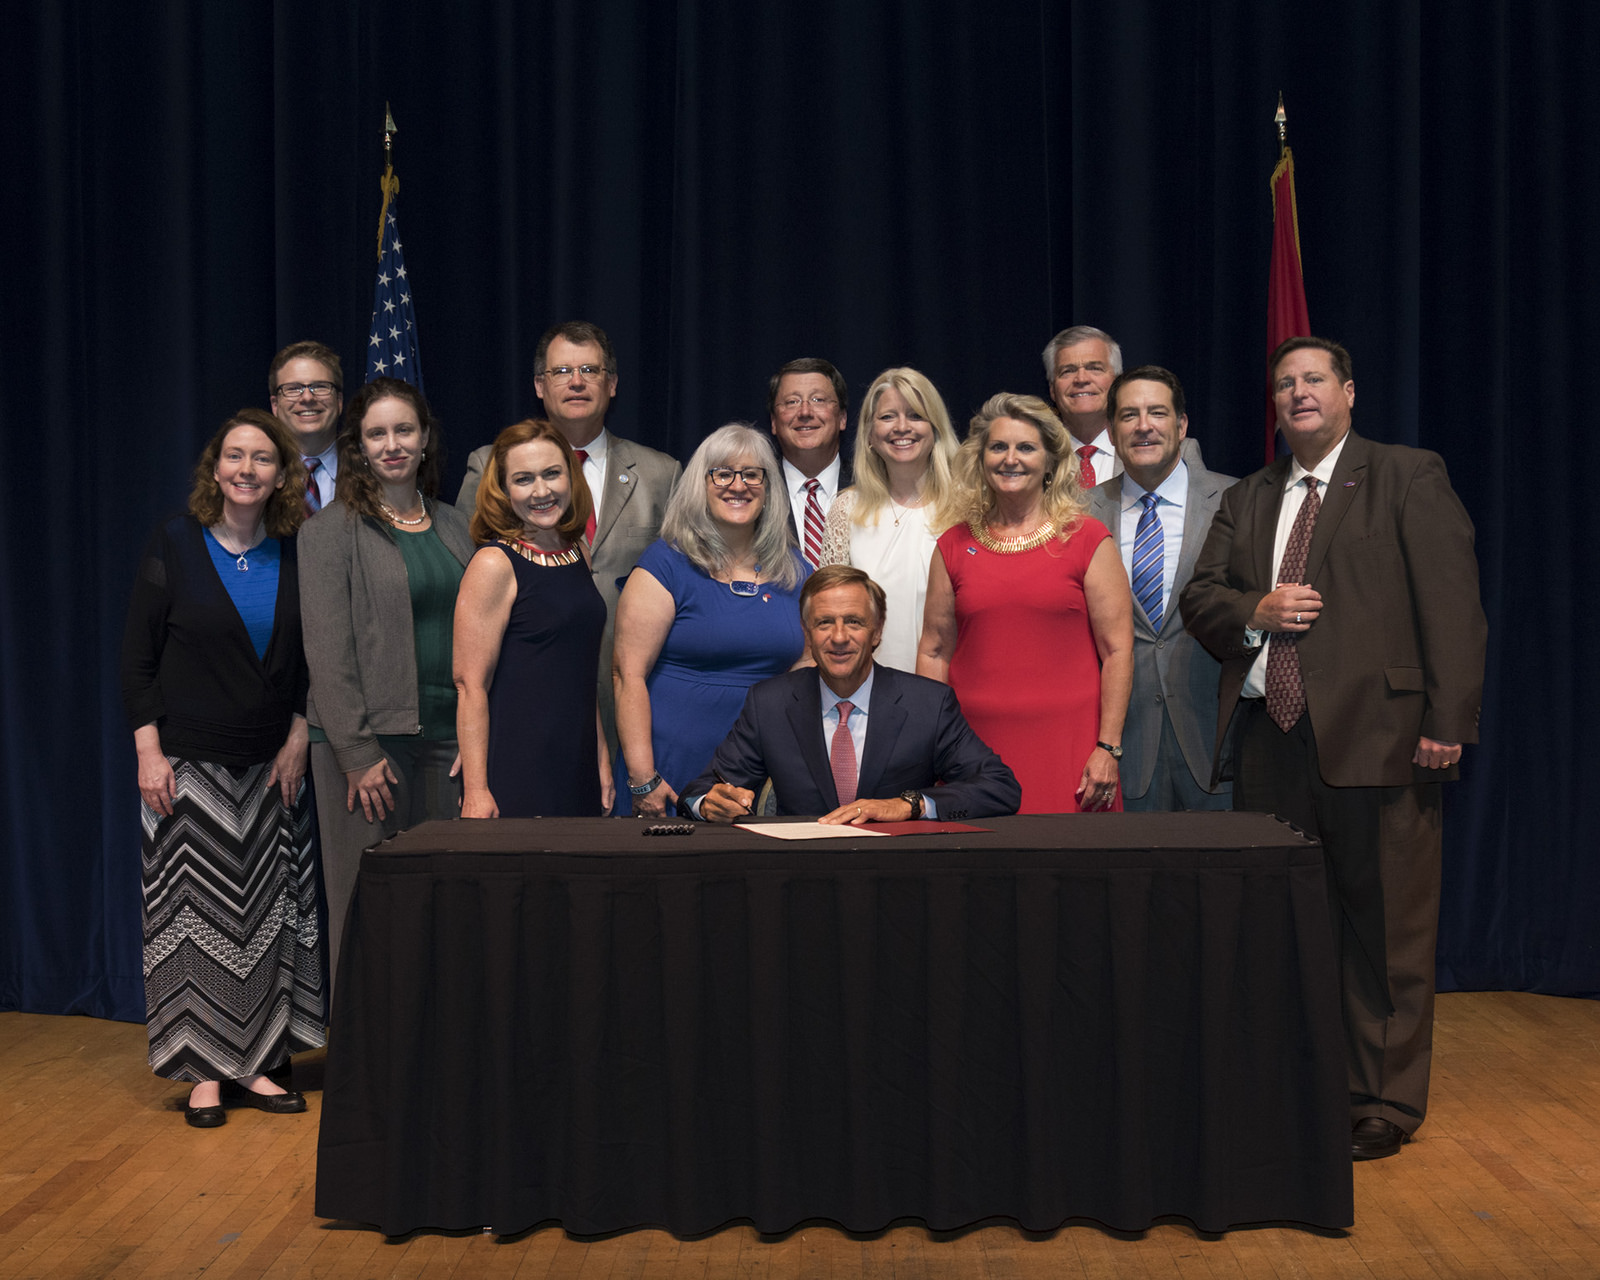 TN Senator Tracy announces signing of the Teacher Bill of Rights